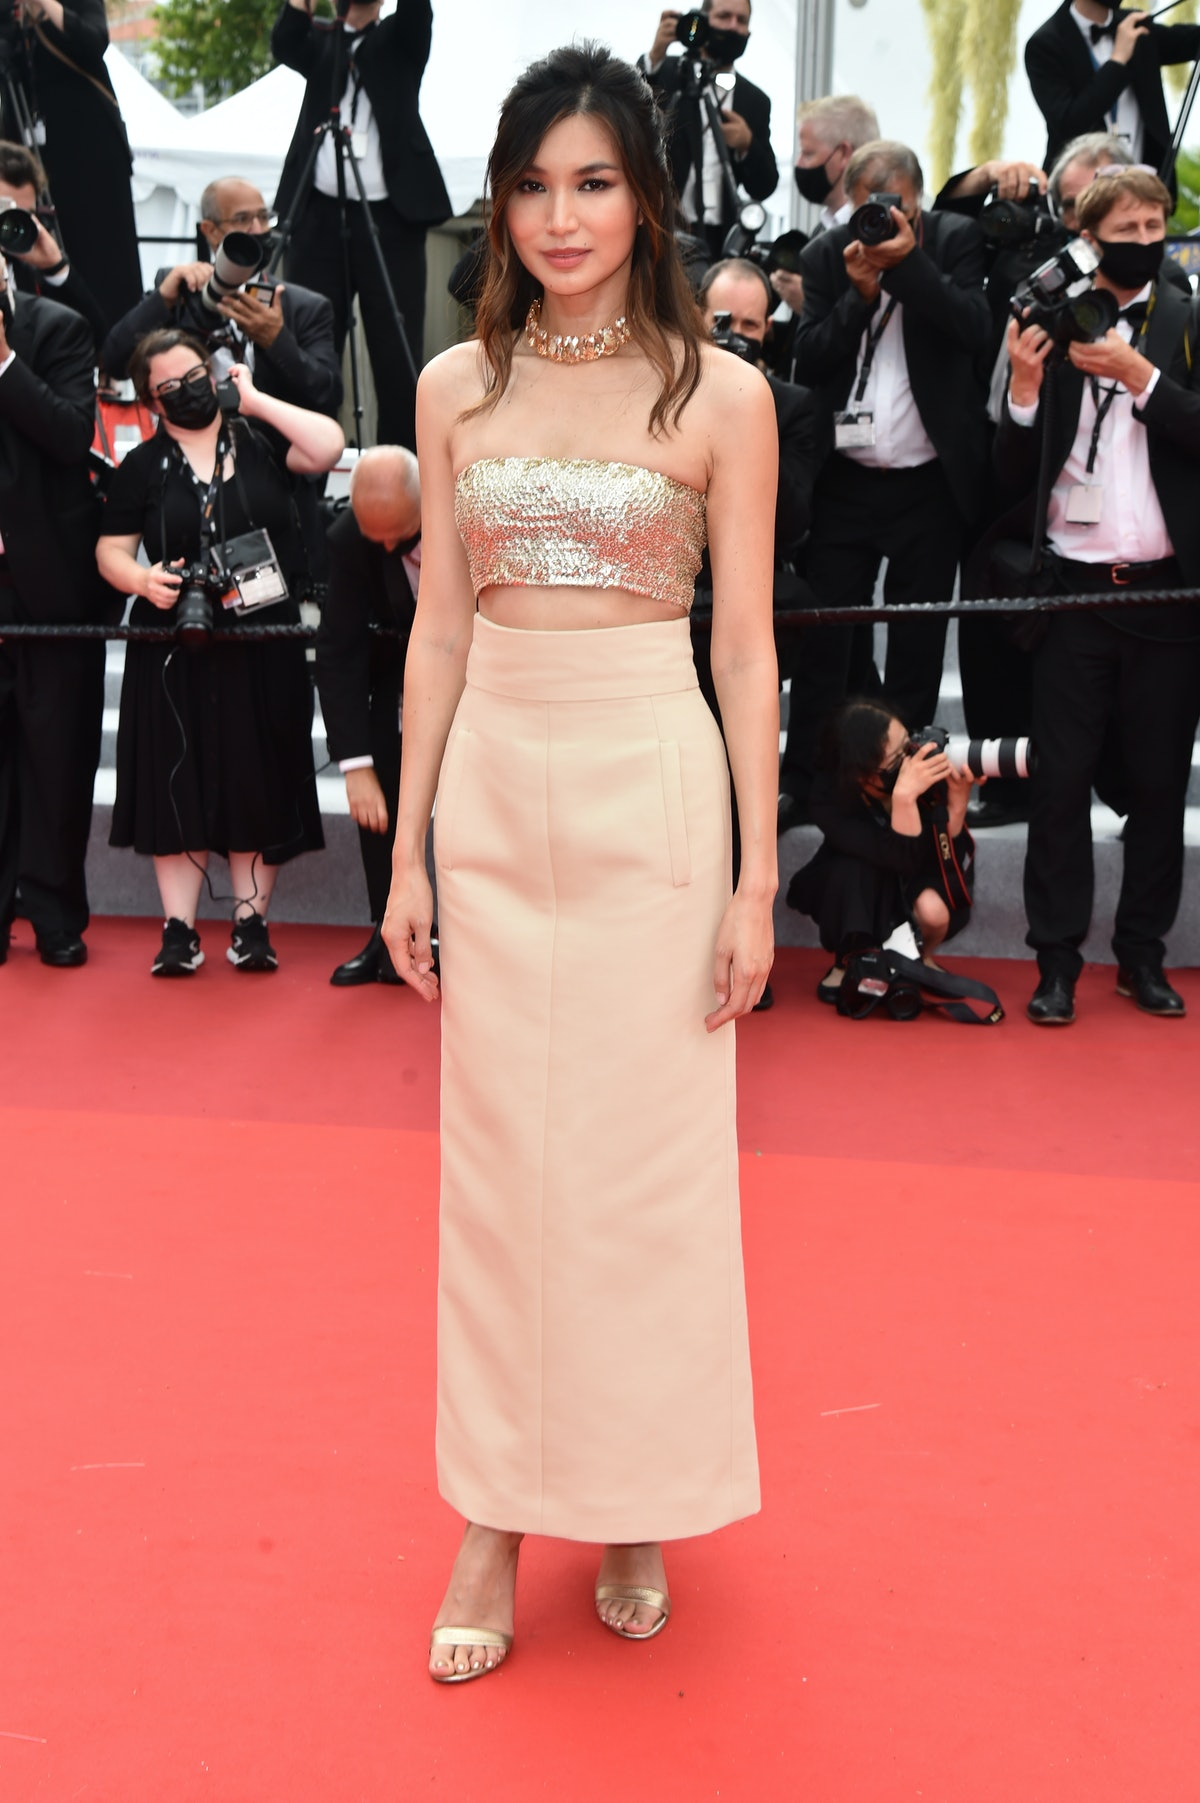 """CANNES, FRANCE - JULY 16: Gemma Chan attends the """"Les Intranquilles (The Restless)"""" screening during the 74th annual Cannes Film Festival on July 16, 2021 in Cannes, France. (Photo by Dominique Charriau/WireImage)"""